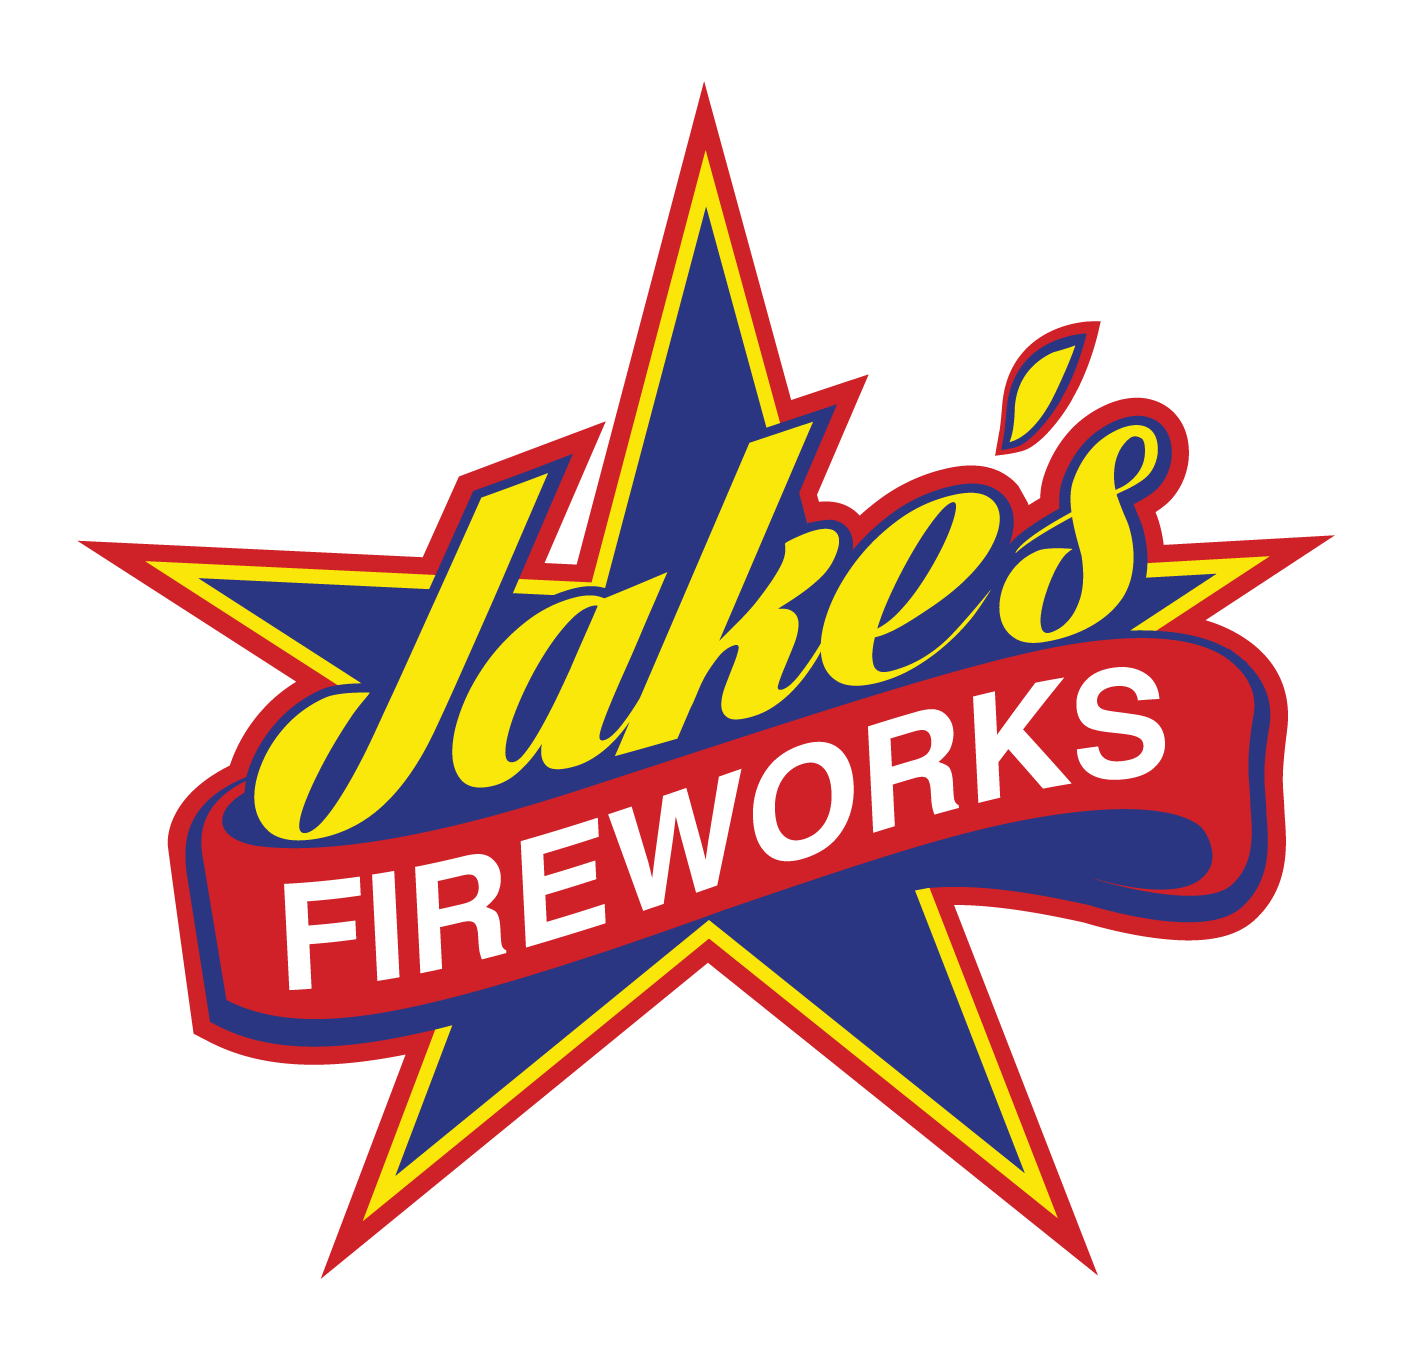 Jake S Fireworks Announce New Products For 2014